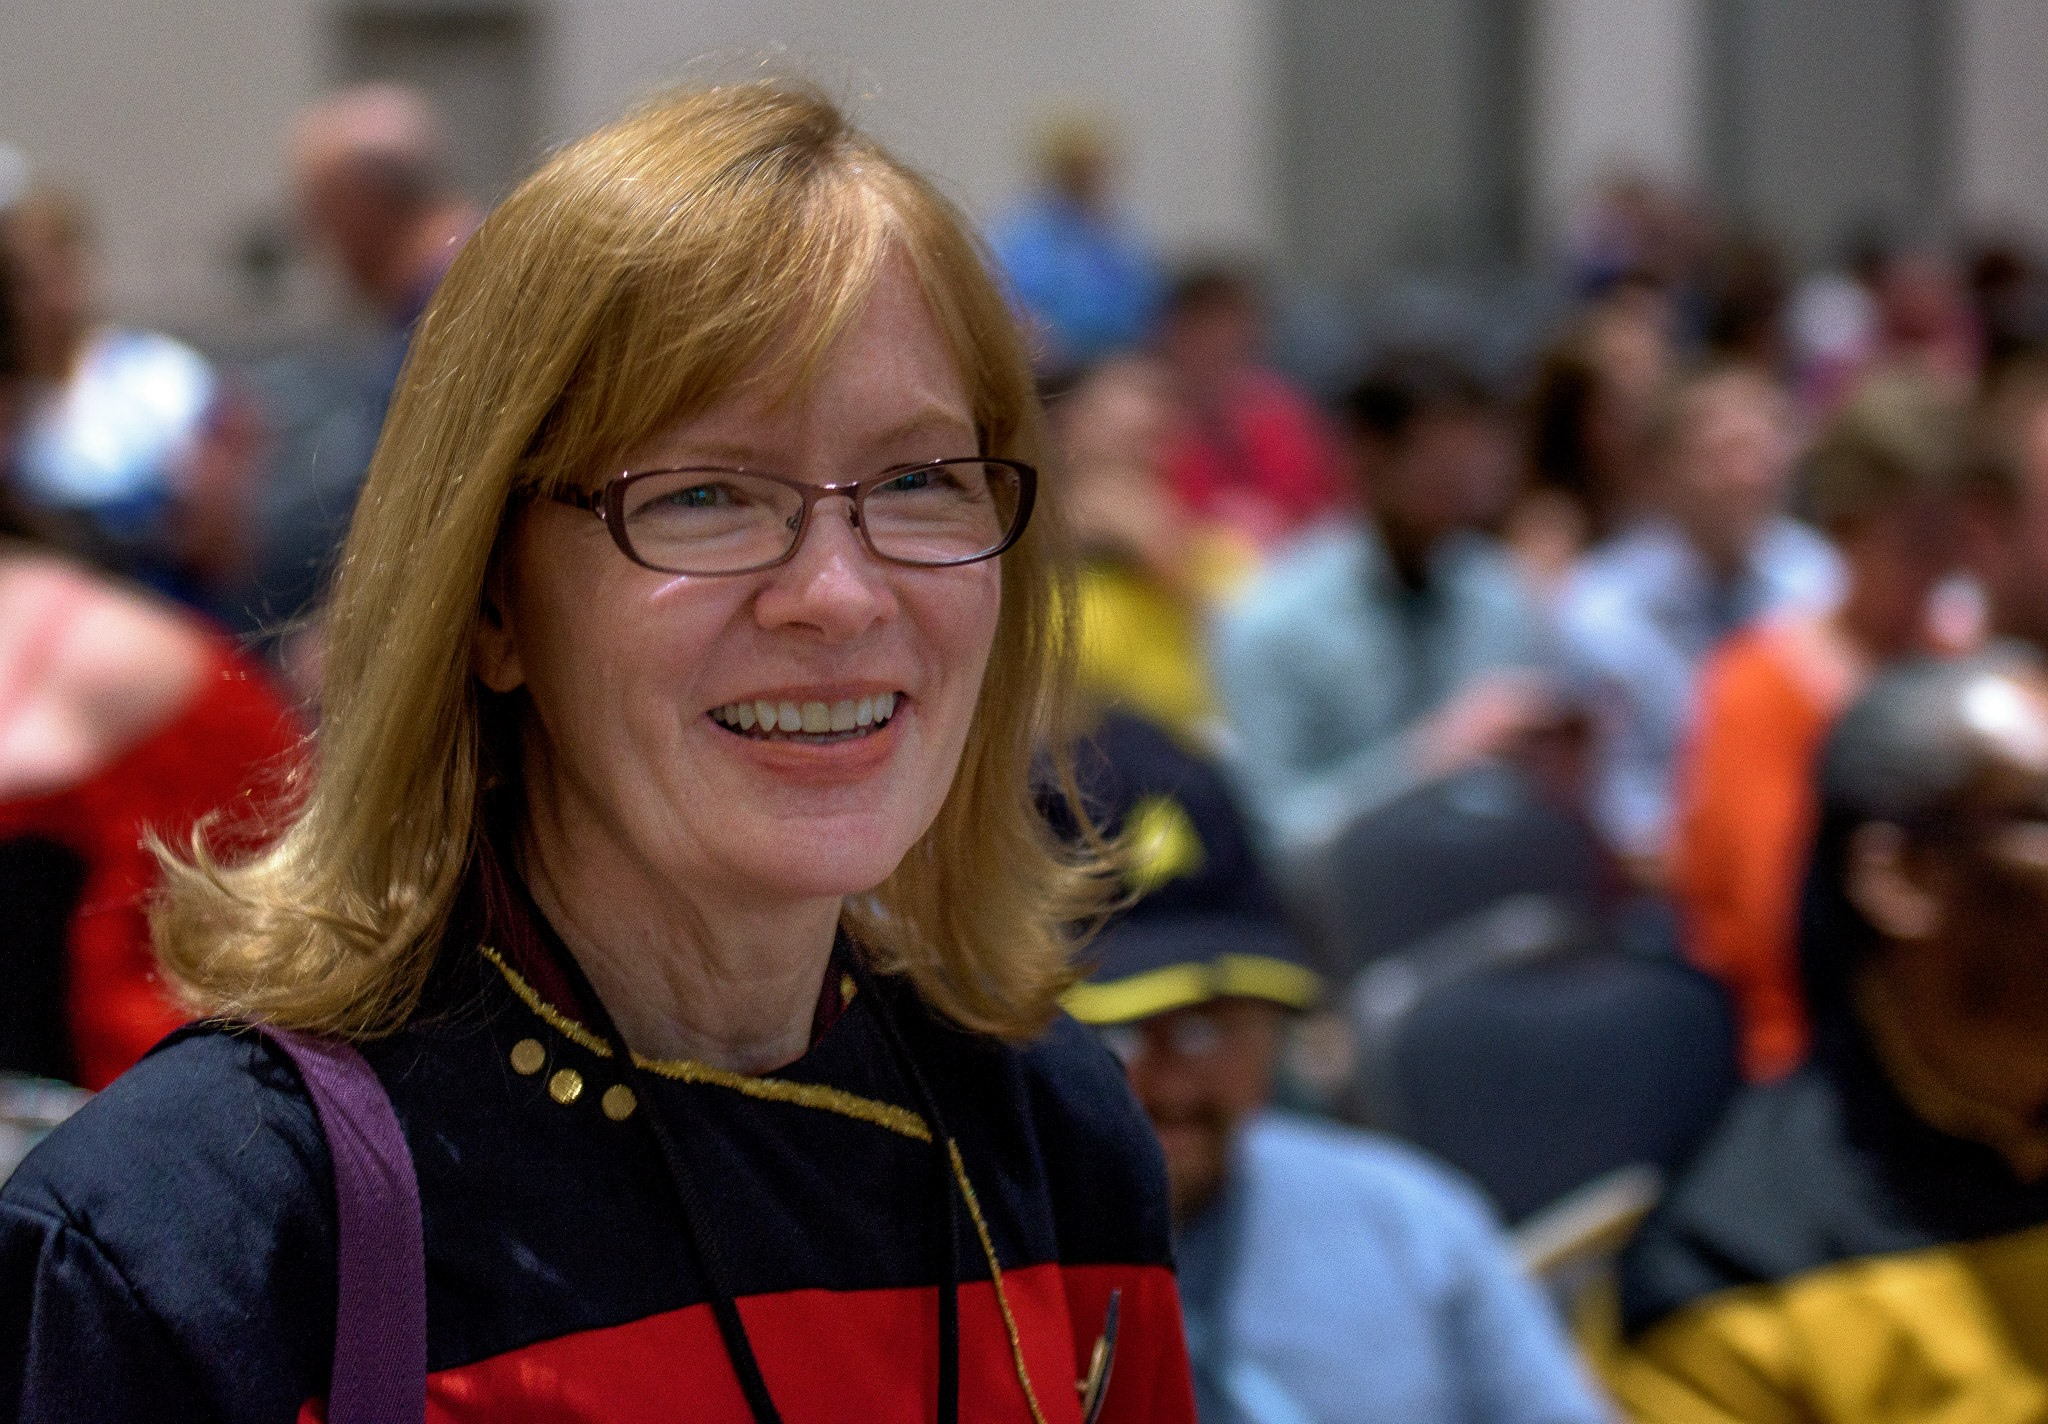 Photo of Marianne Dyson at Space City Comic Con by Carl Shier.